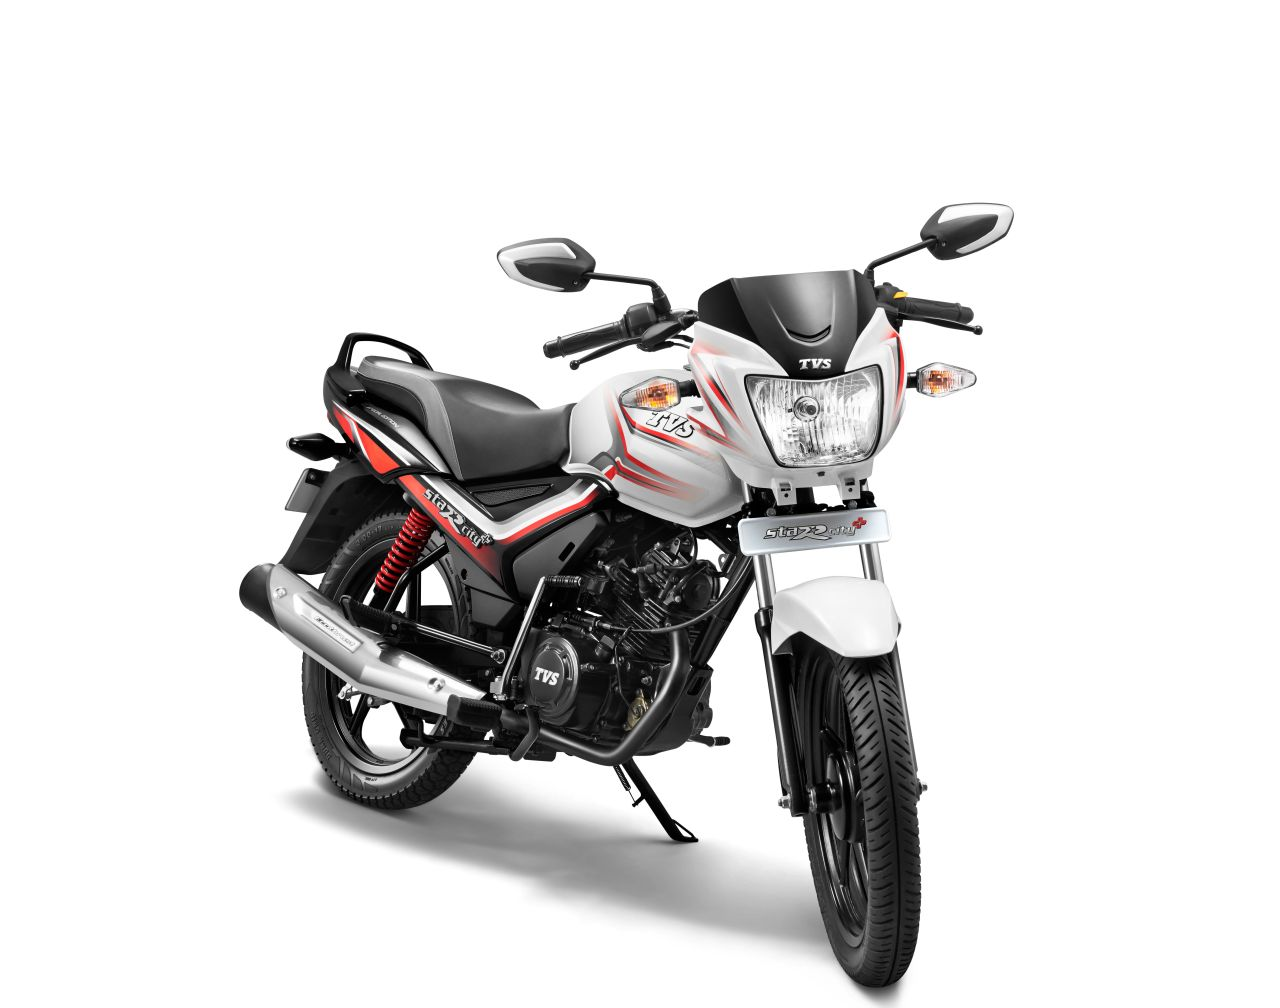 tvs-star-city-plus-special-edition-launched